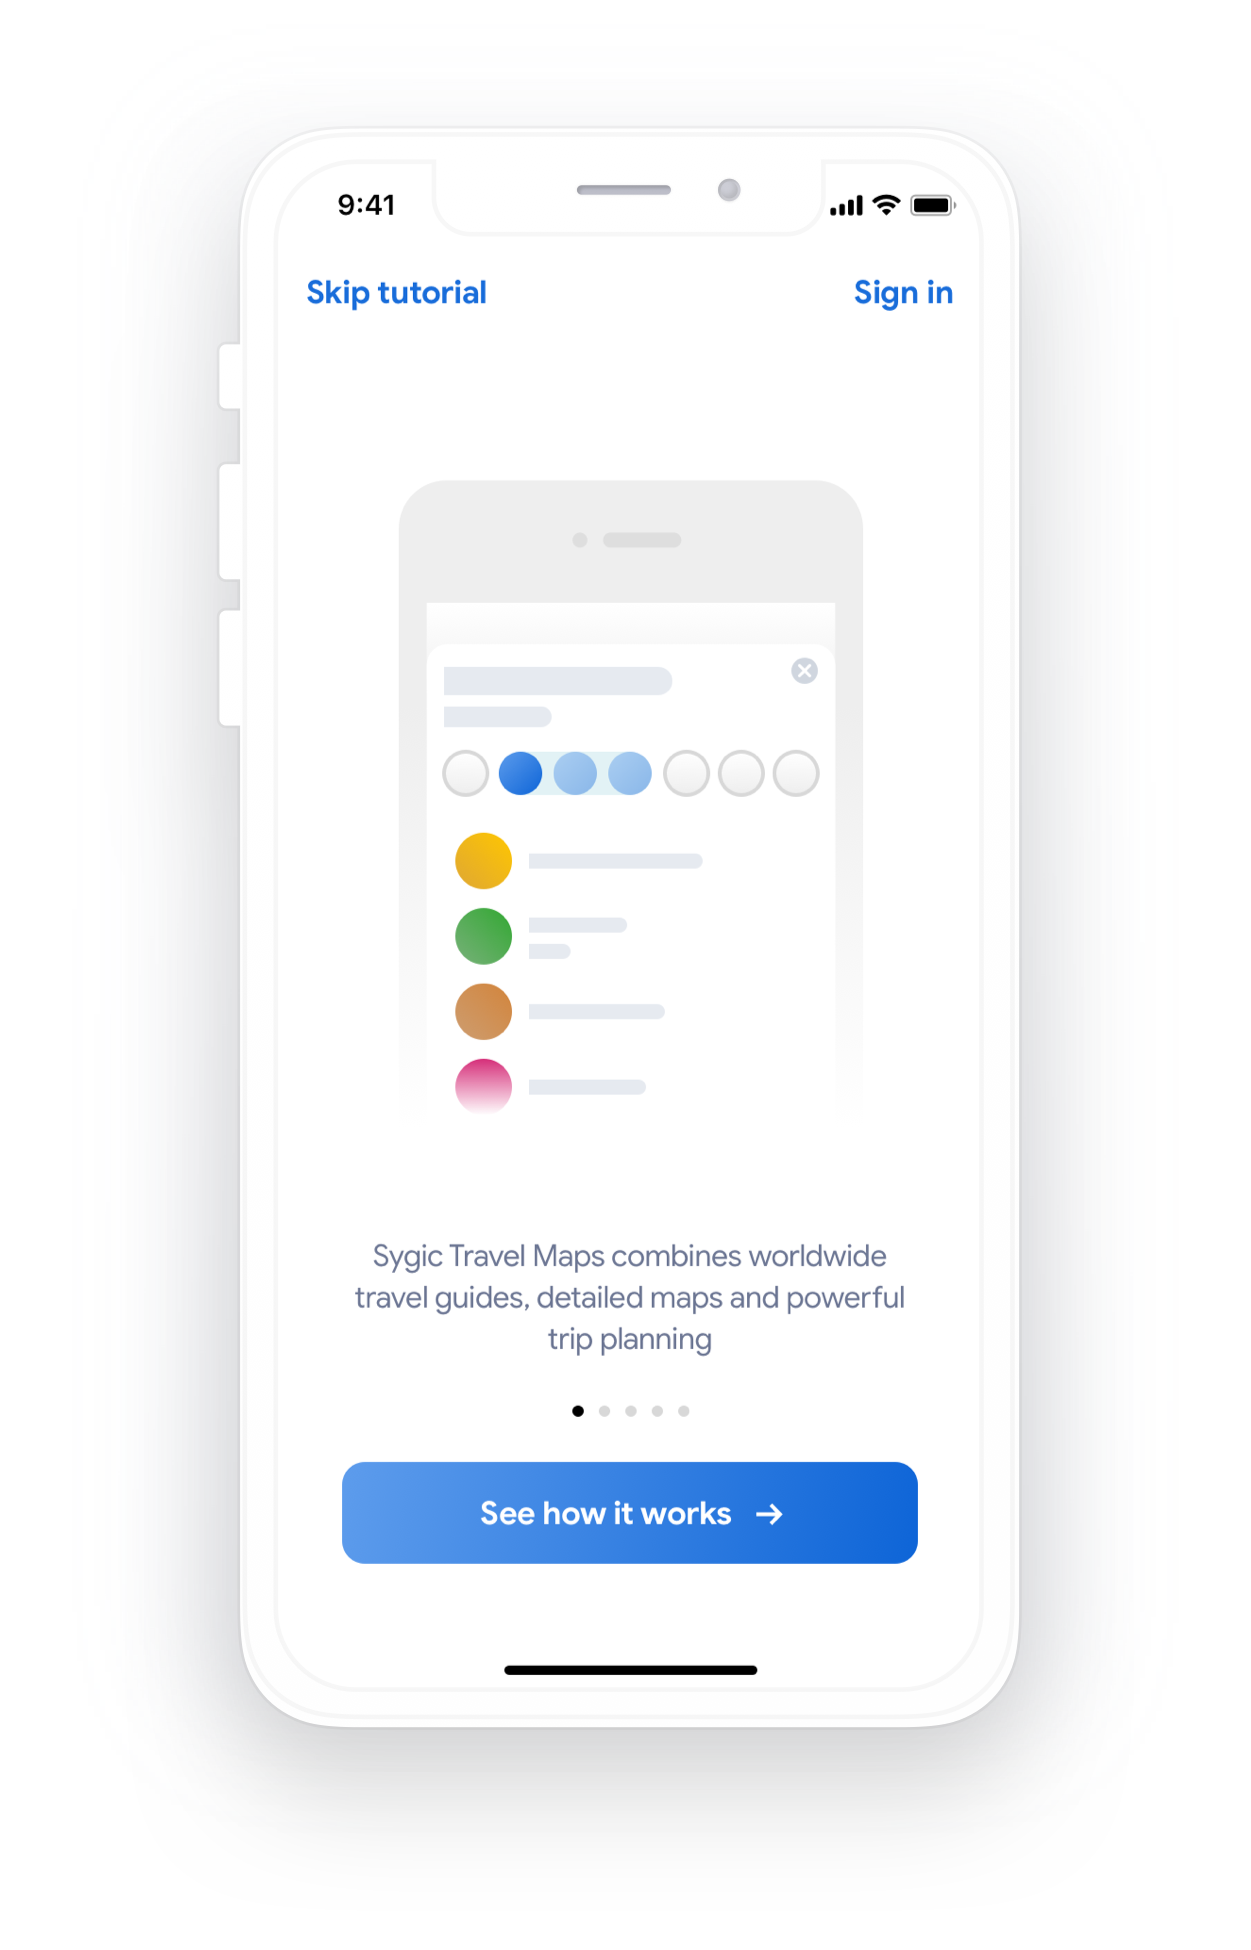 Sygic Travel App: Onboarding - UpLabs